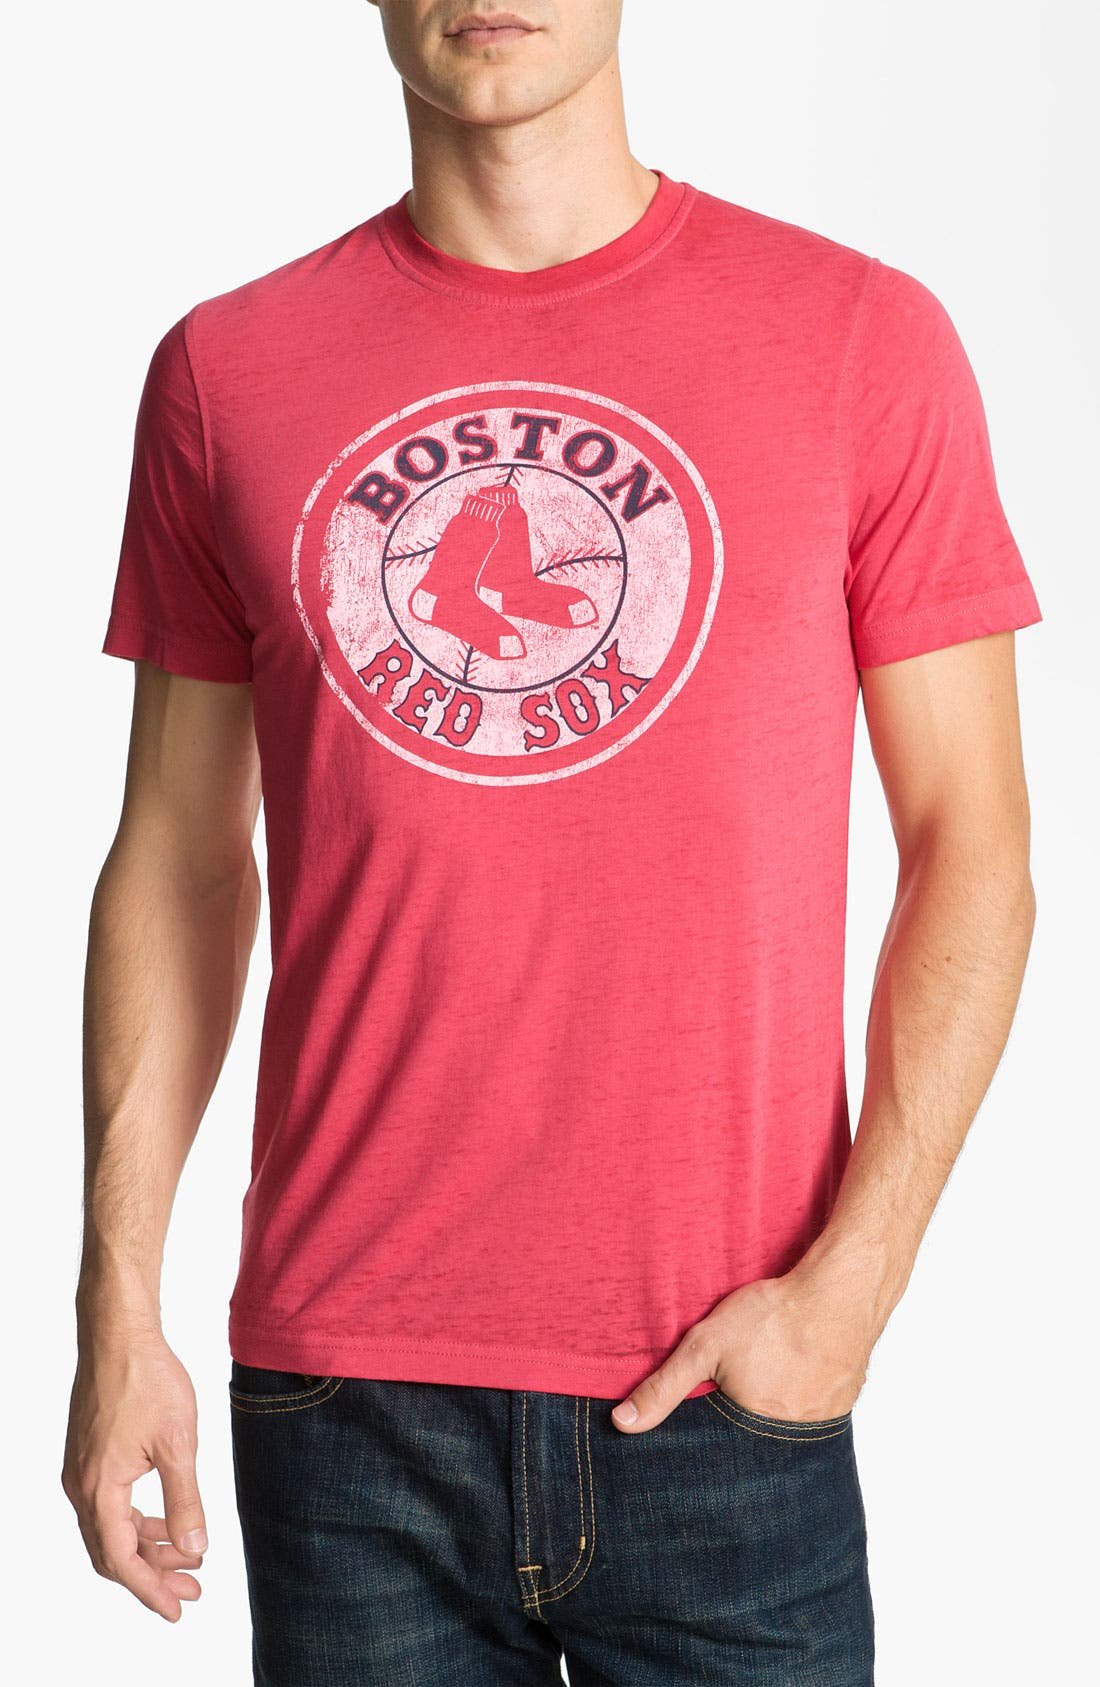 Alternate Image 1 Selected - Red Jacket 'Red Sox - Greenwood' T-Shirt